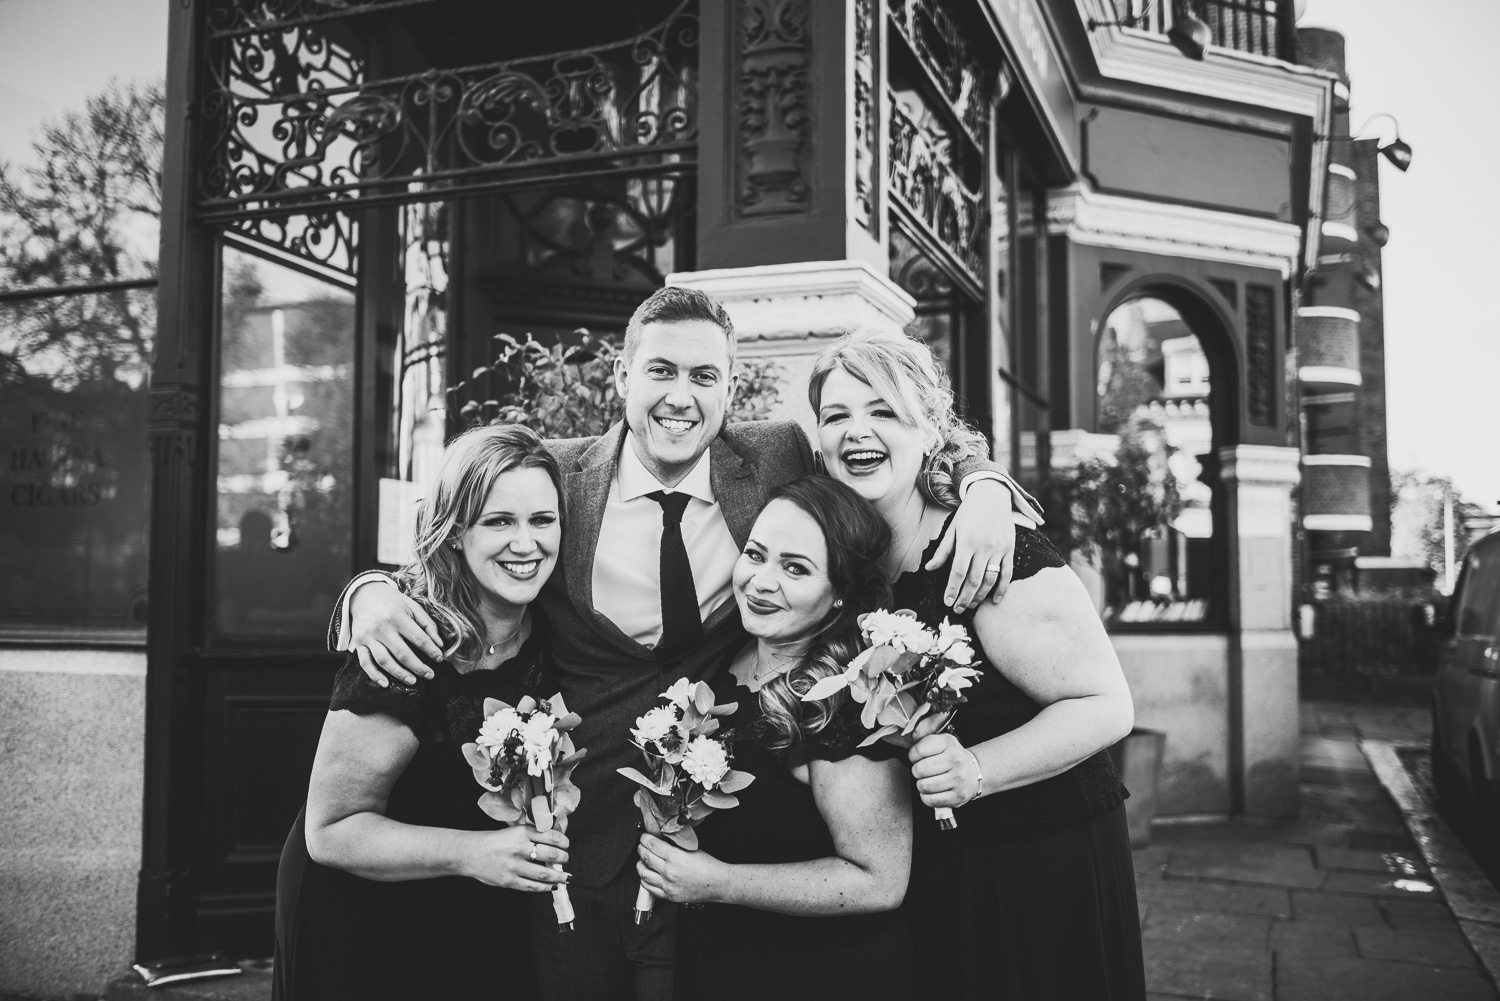 west-london-pub-wedding-42.jpg